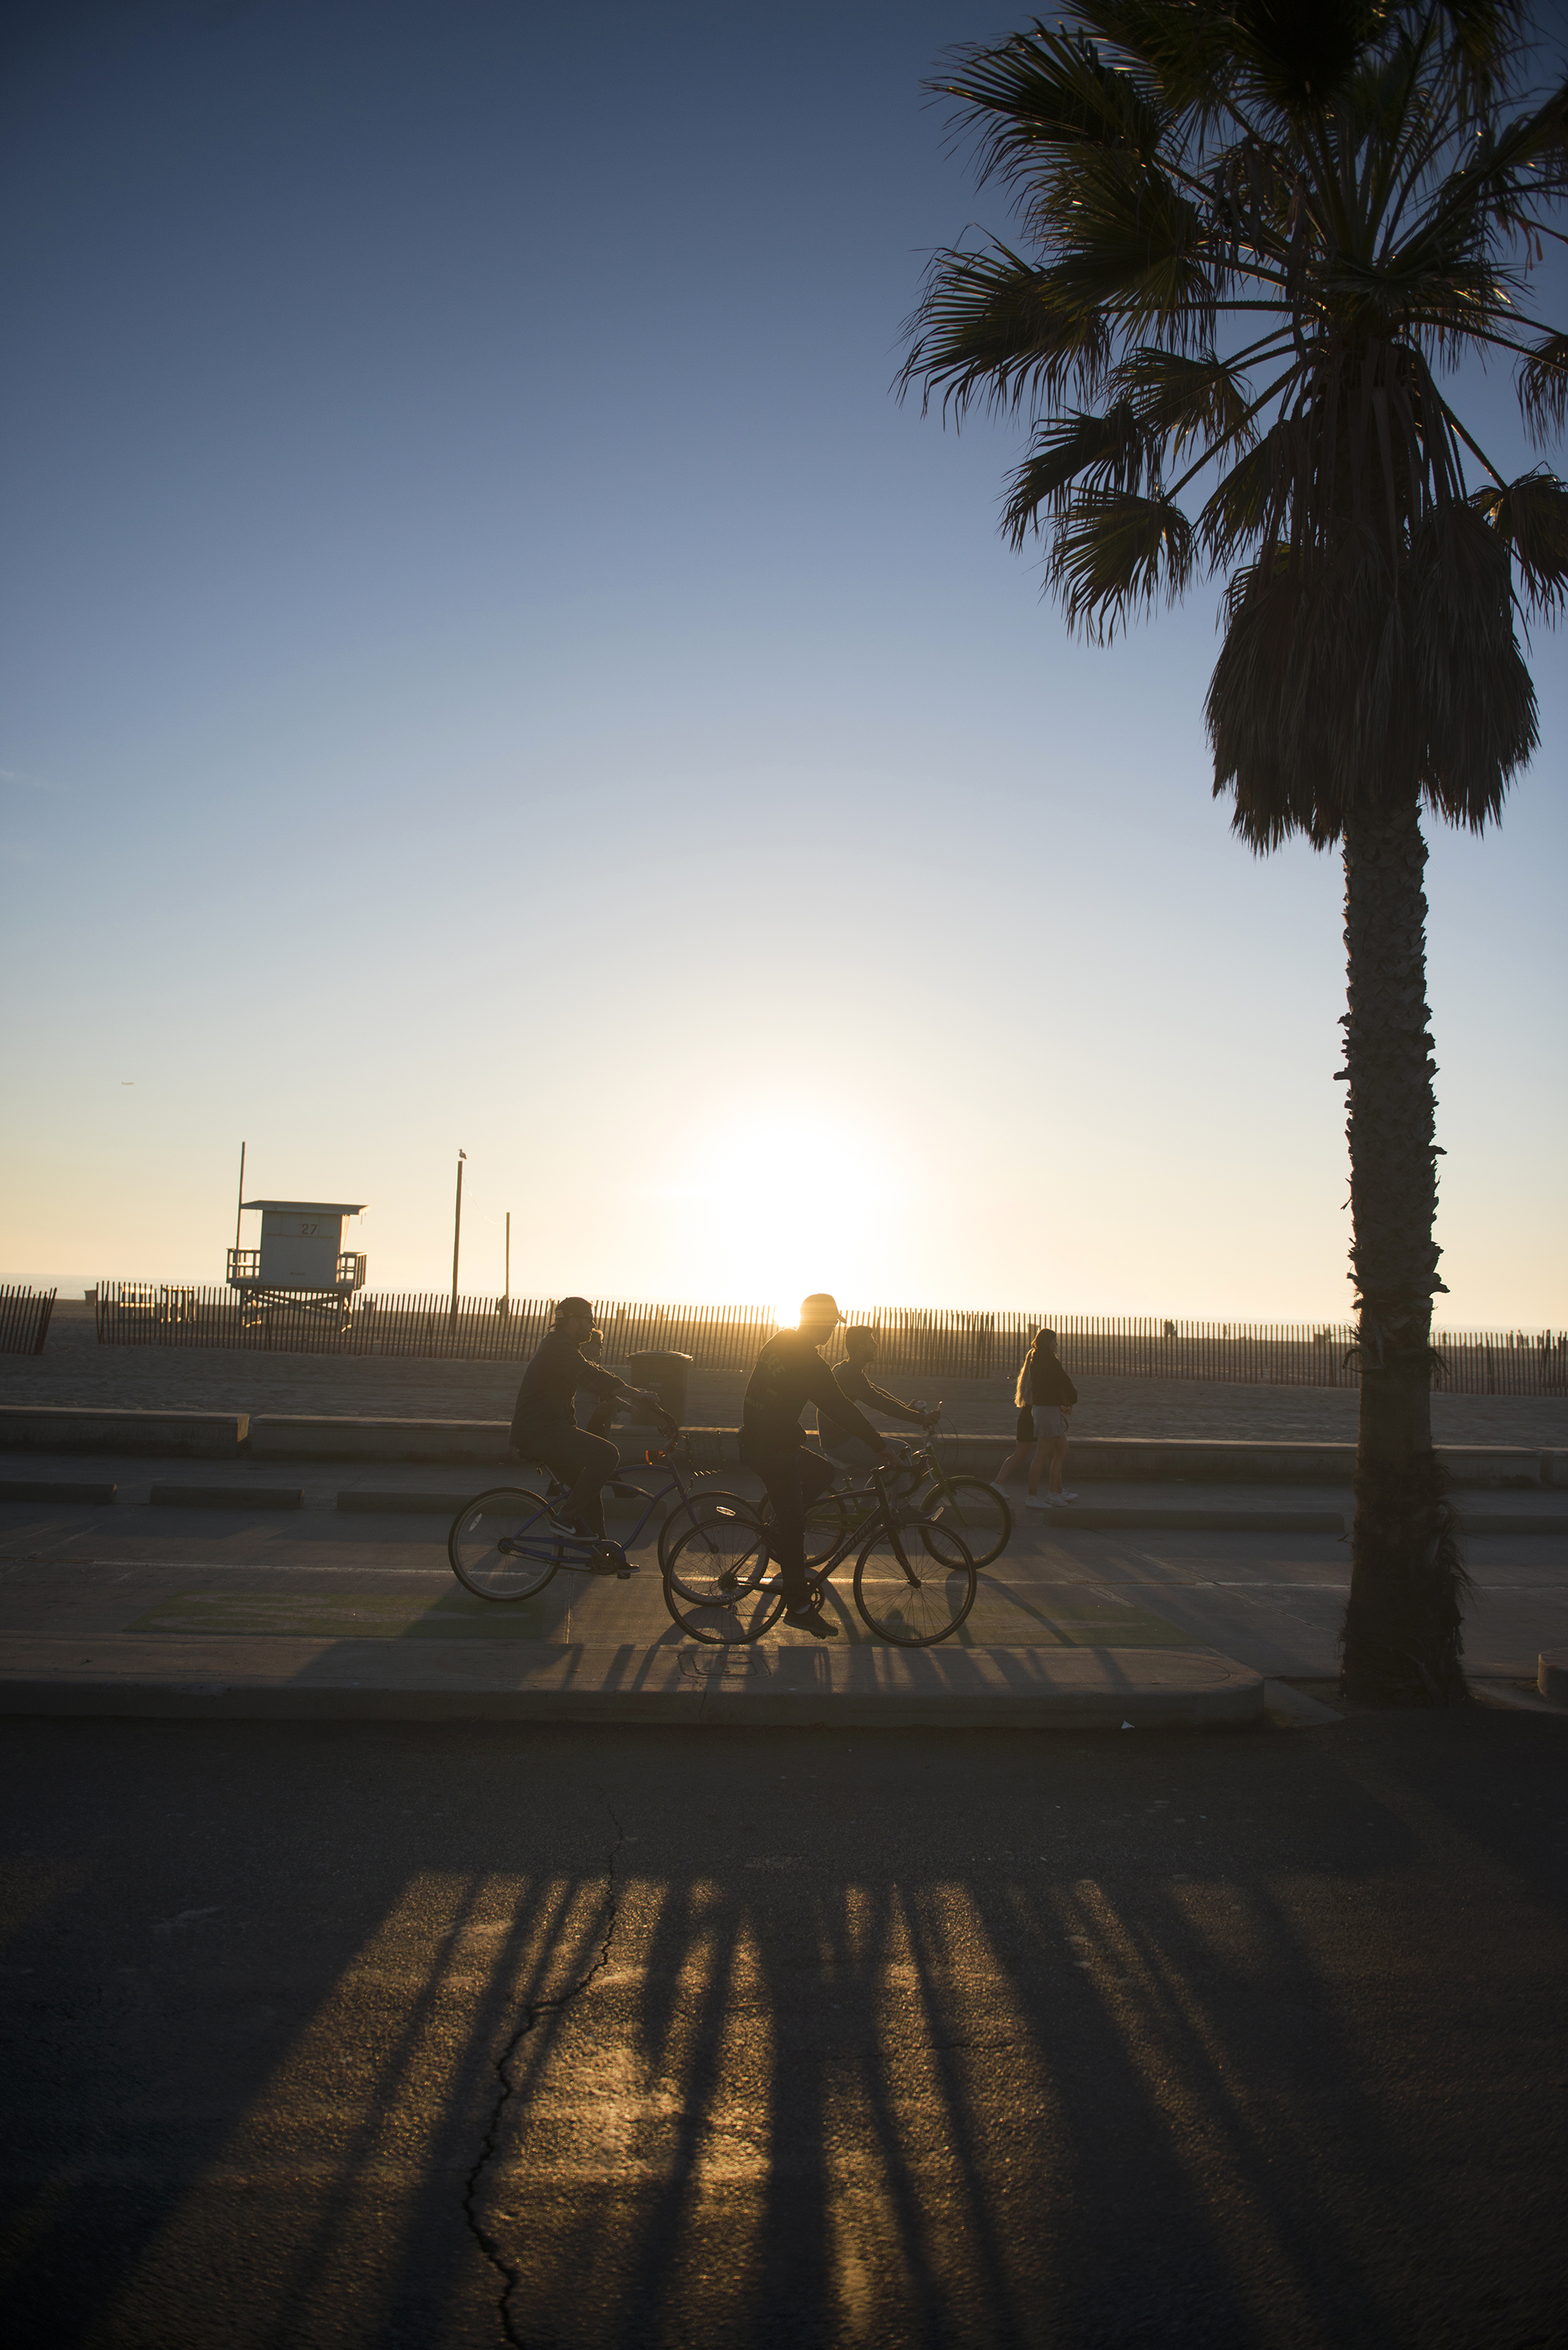 Bikers ride along the bike path between Venice Beach and the Santa Monica Beach pier in Los Angeles, Ca. on Thursday, December 28, 2017. Temperatures in the 70's made for optimal beach weather to close out the year along the Southern California coast. Photo by David Andrews.